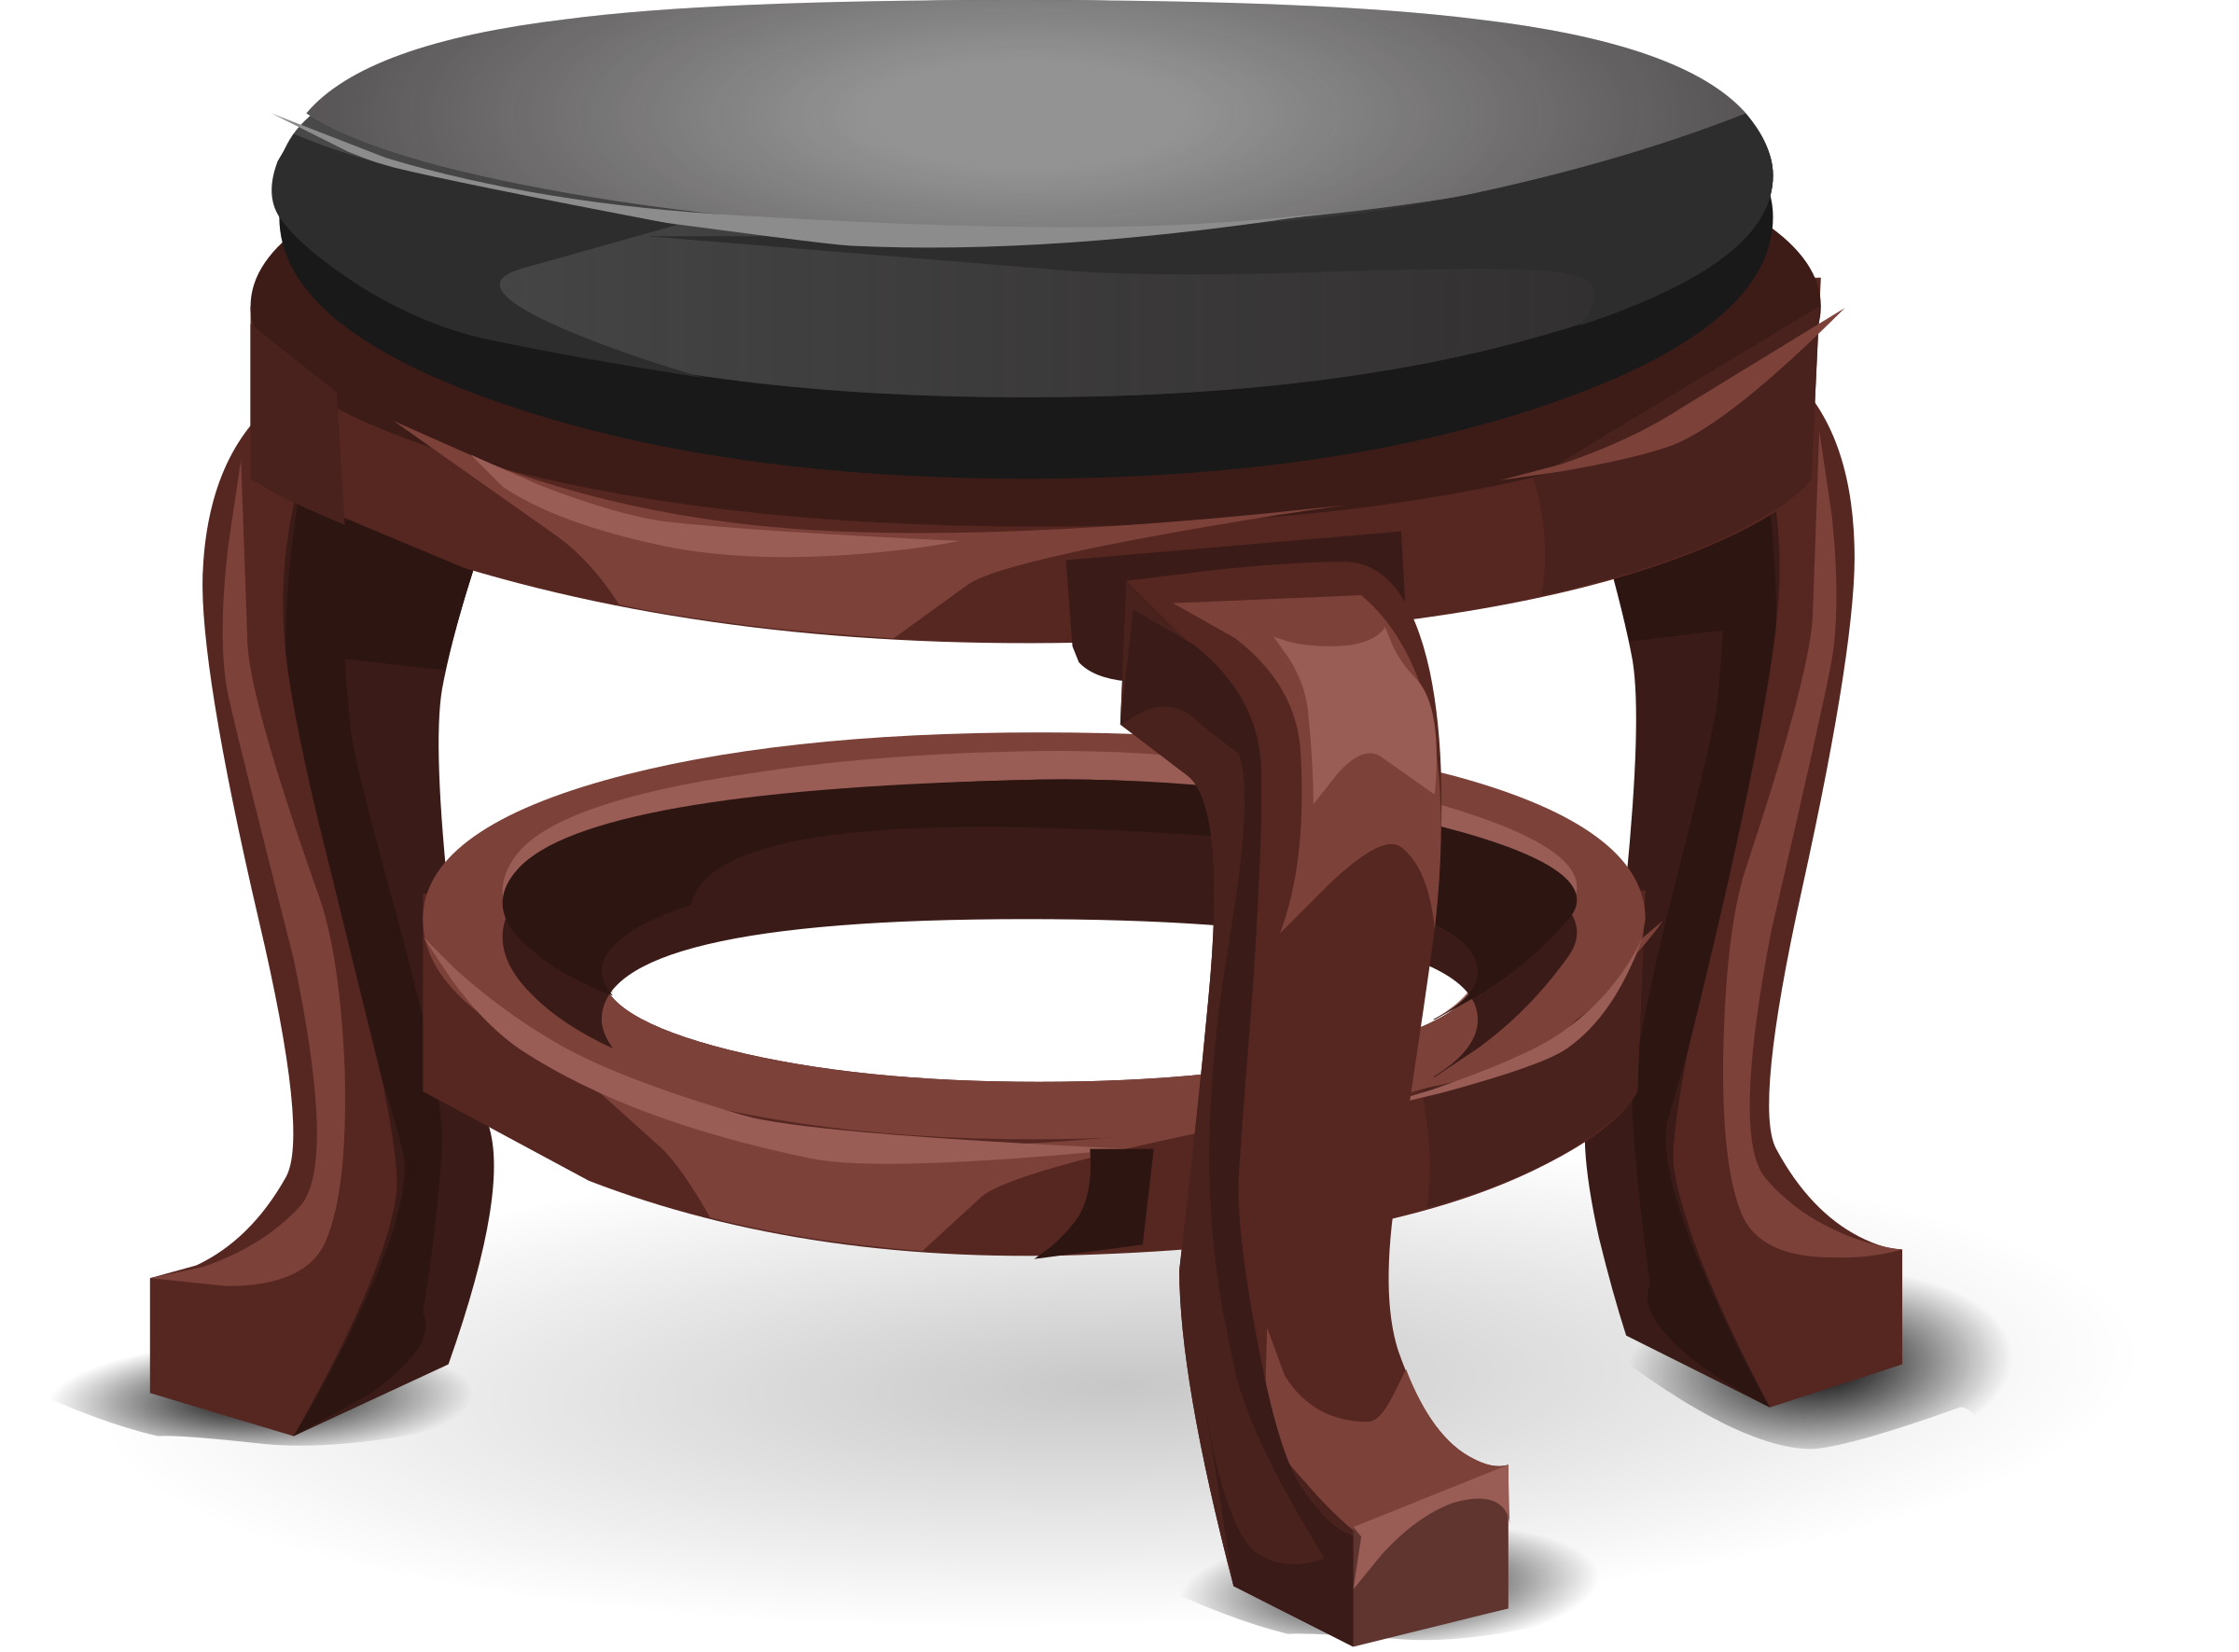 Stool from Glitch by anarres